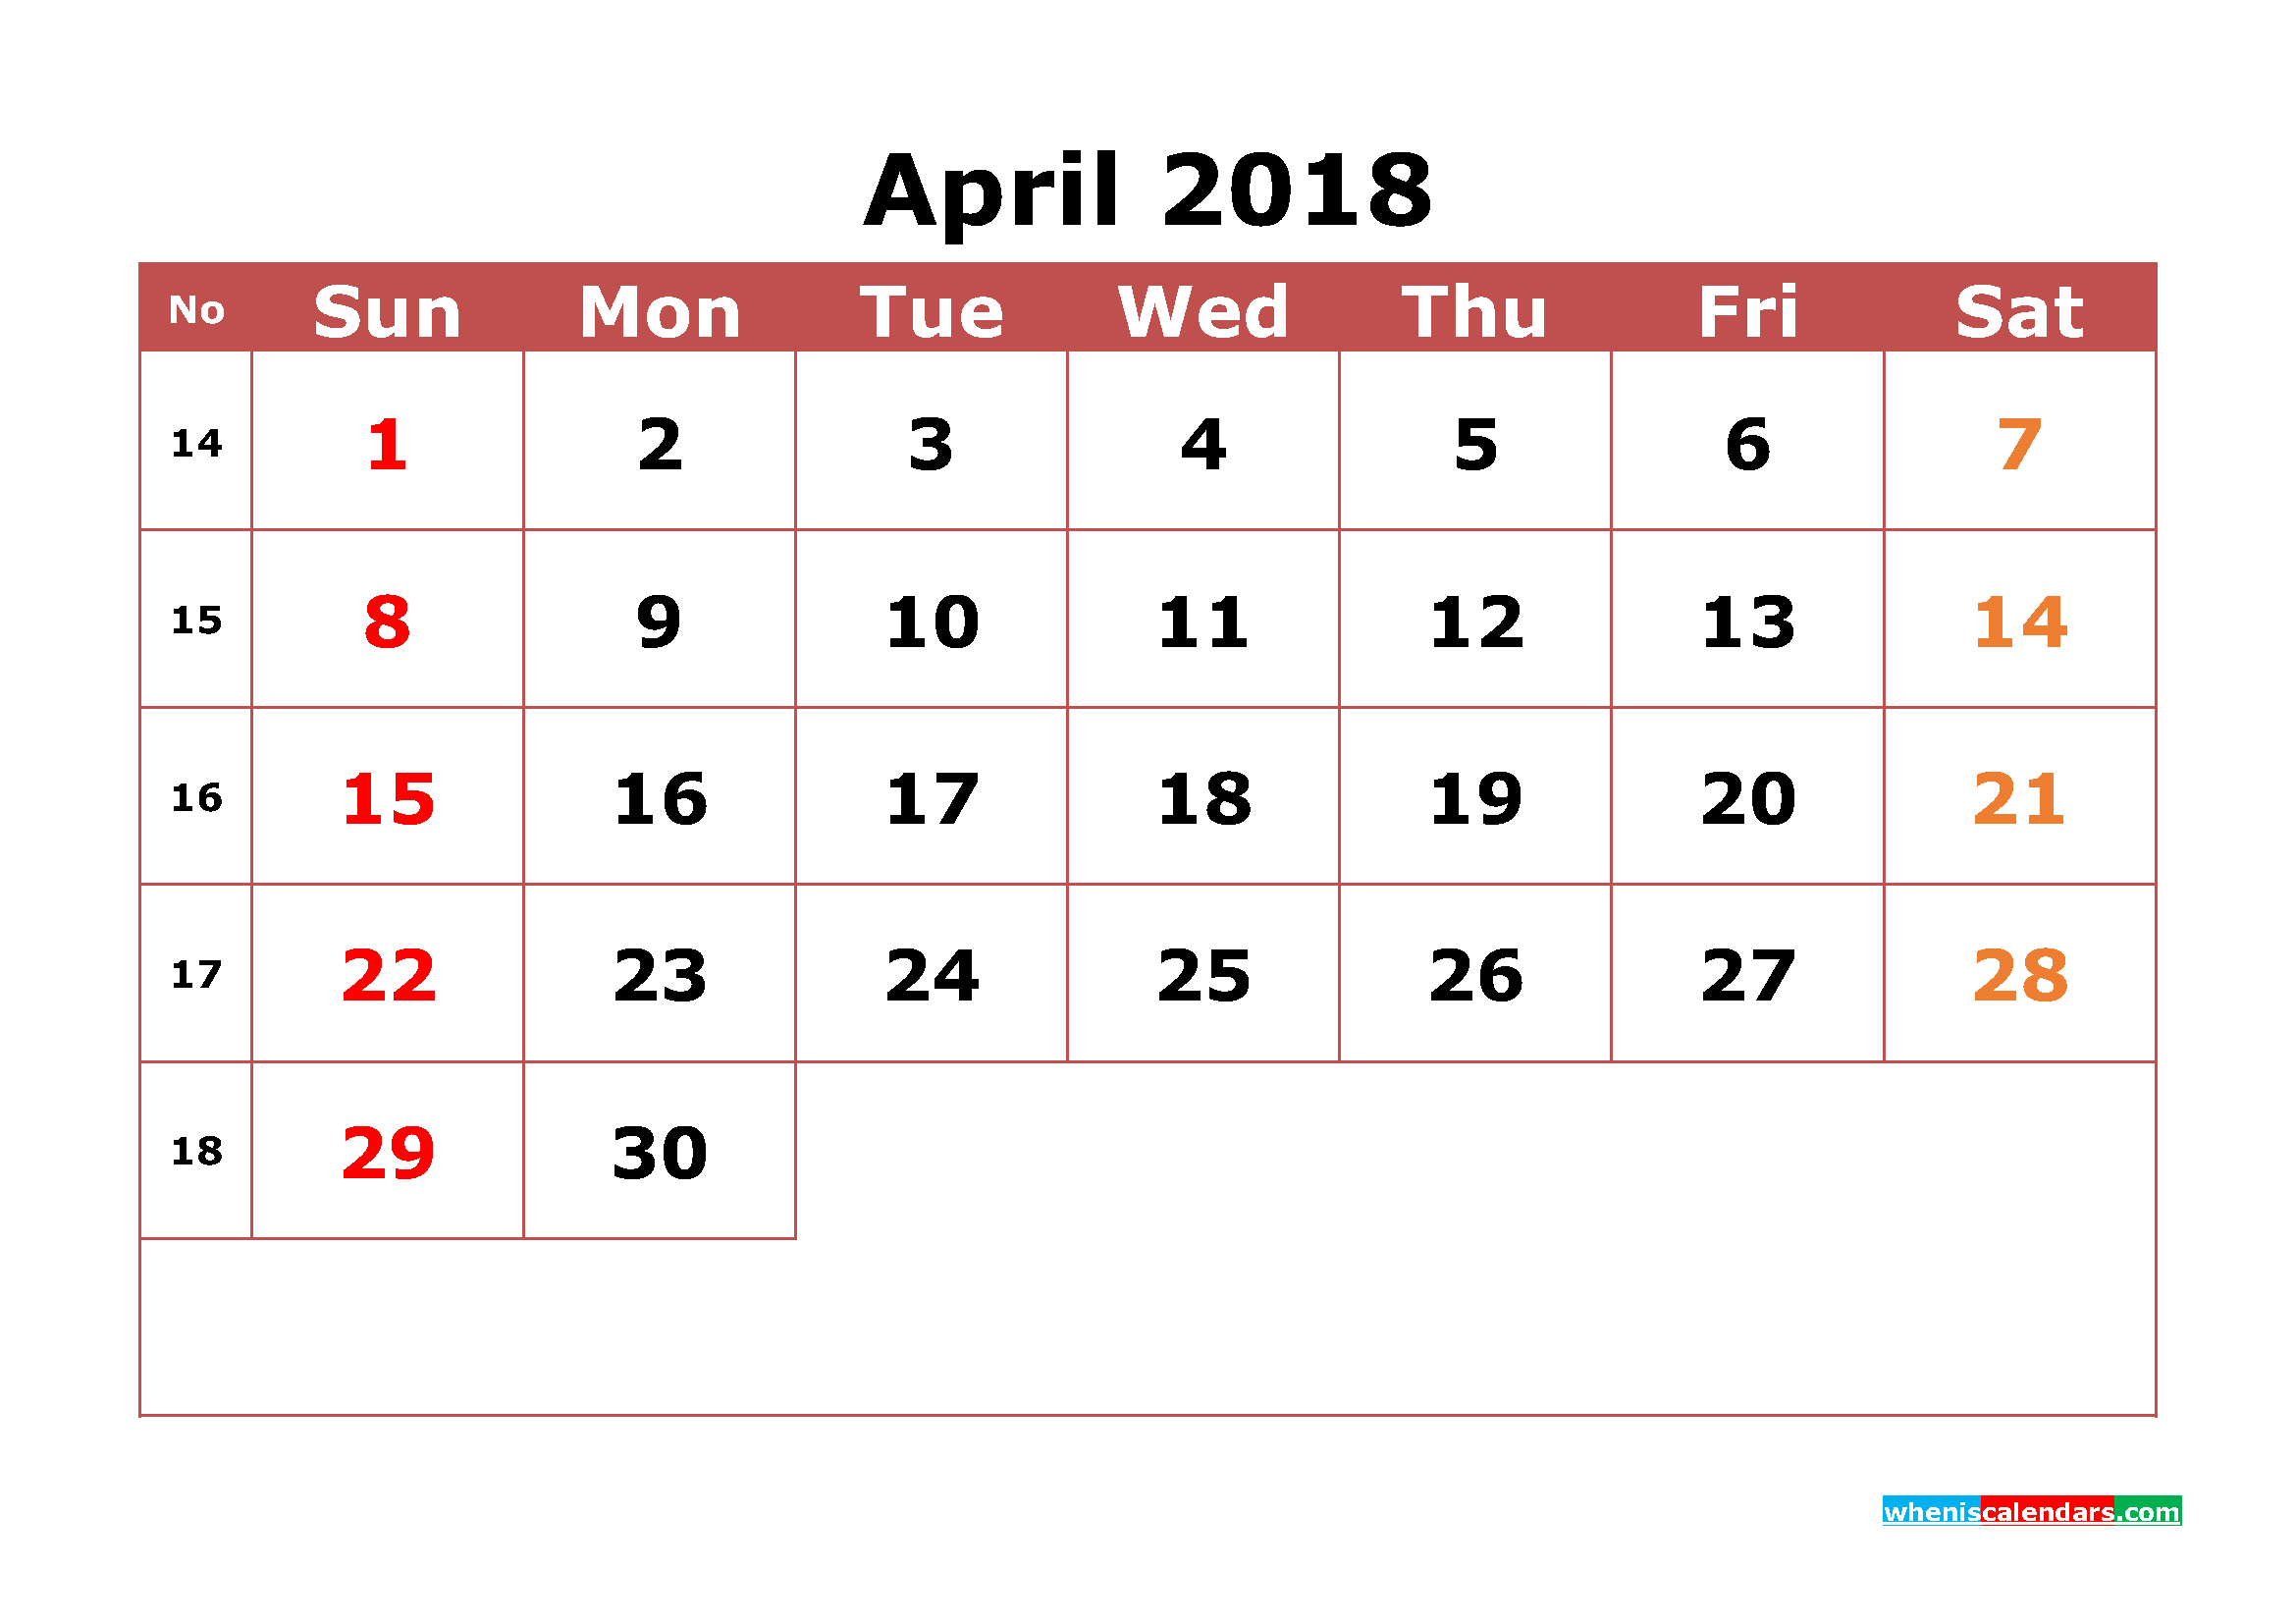 April 2018 Calendar Printable with Week Numbers Image